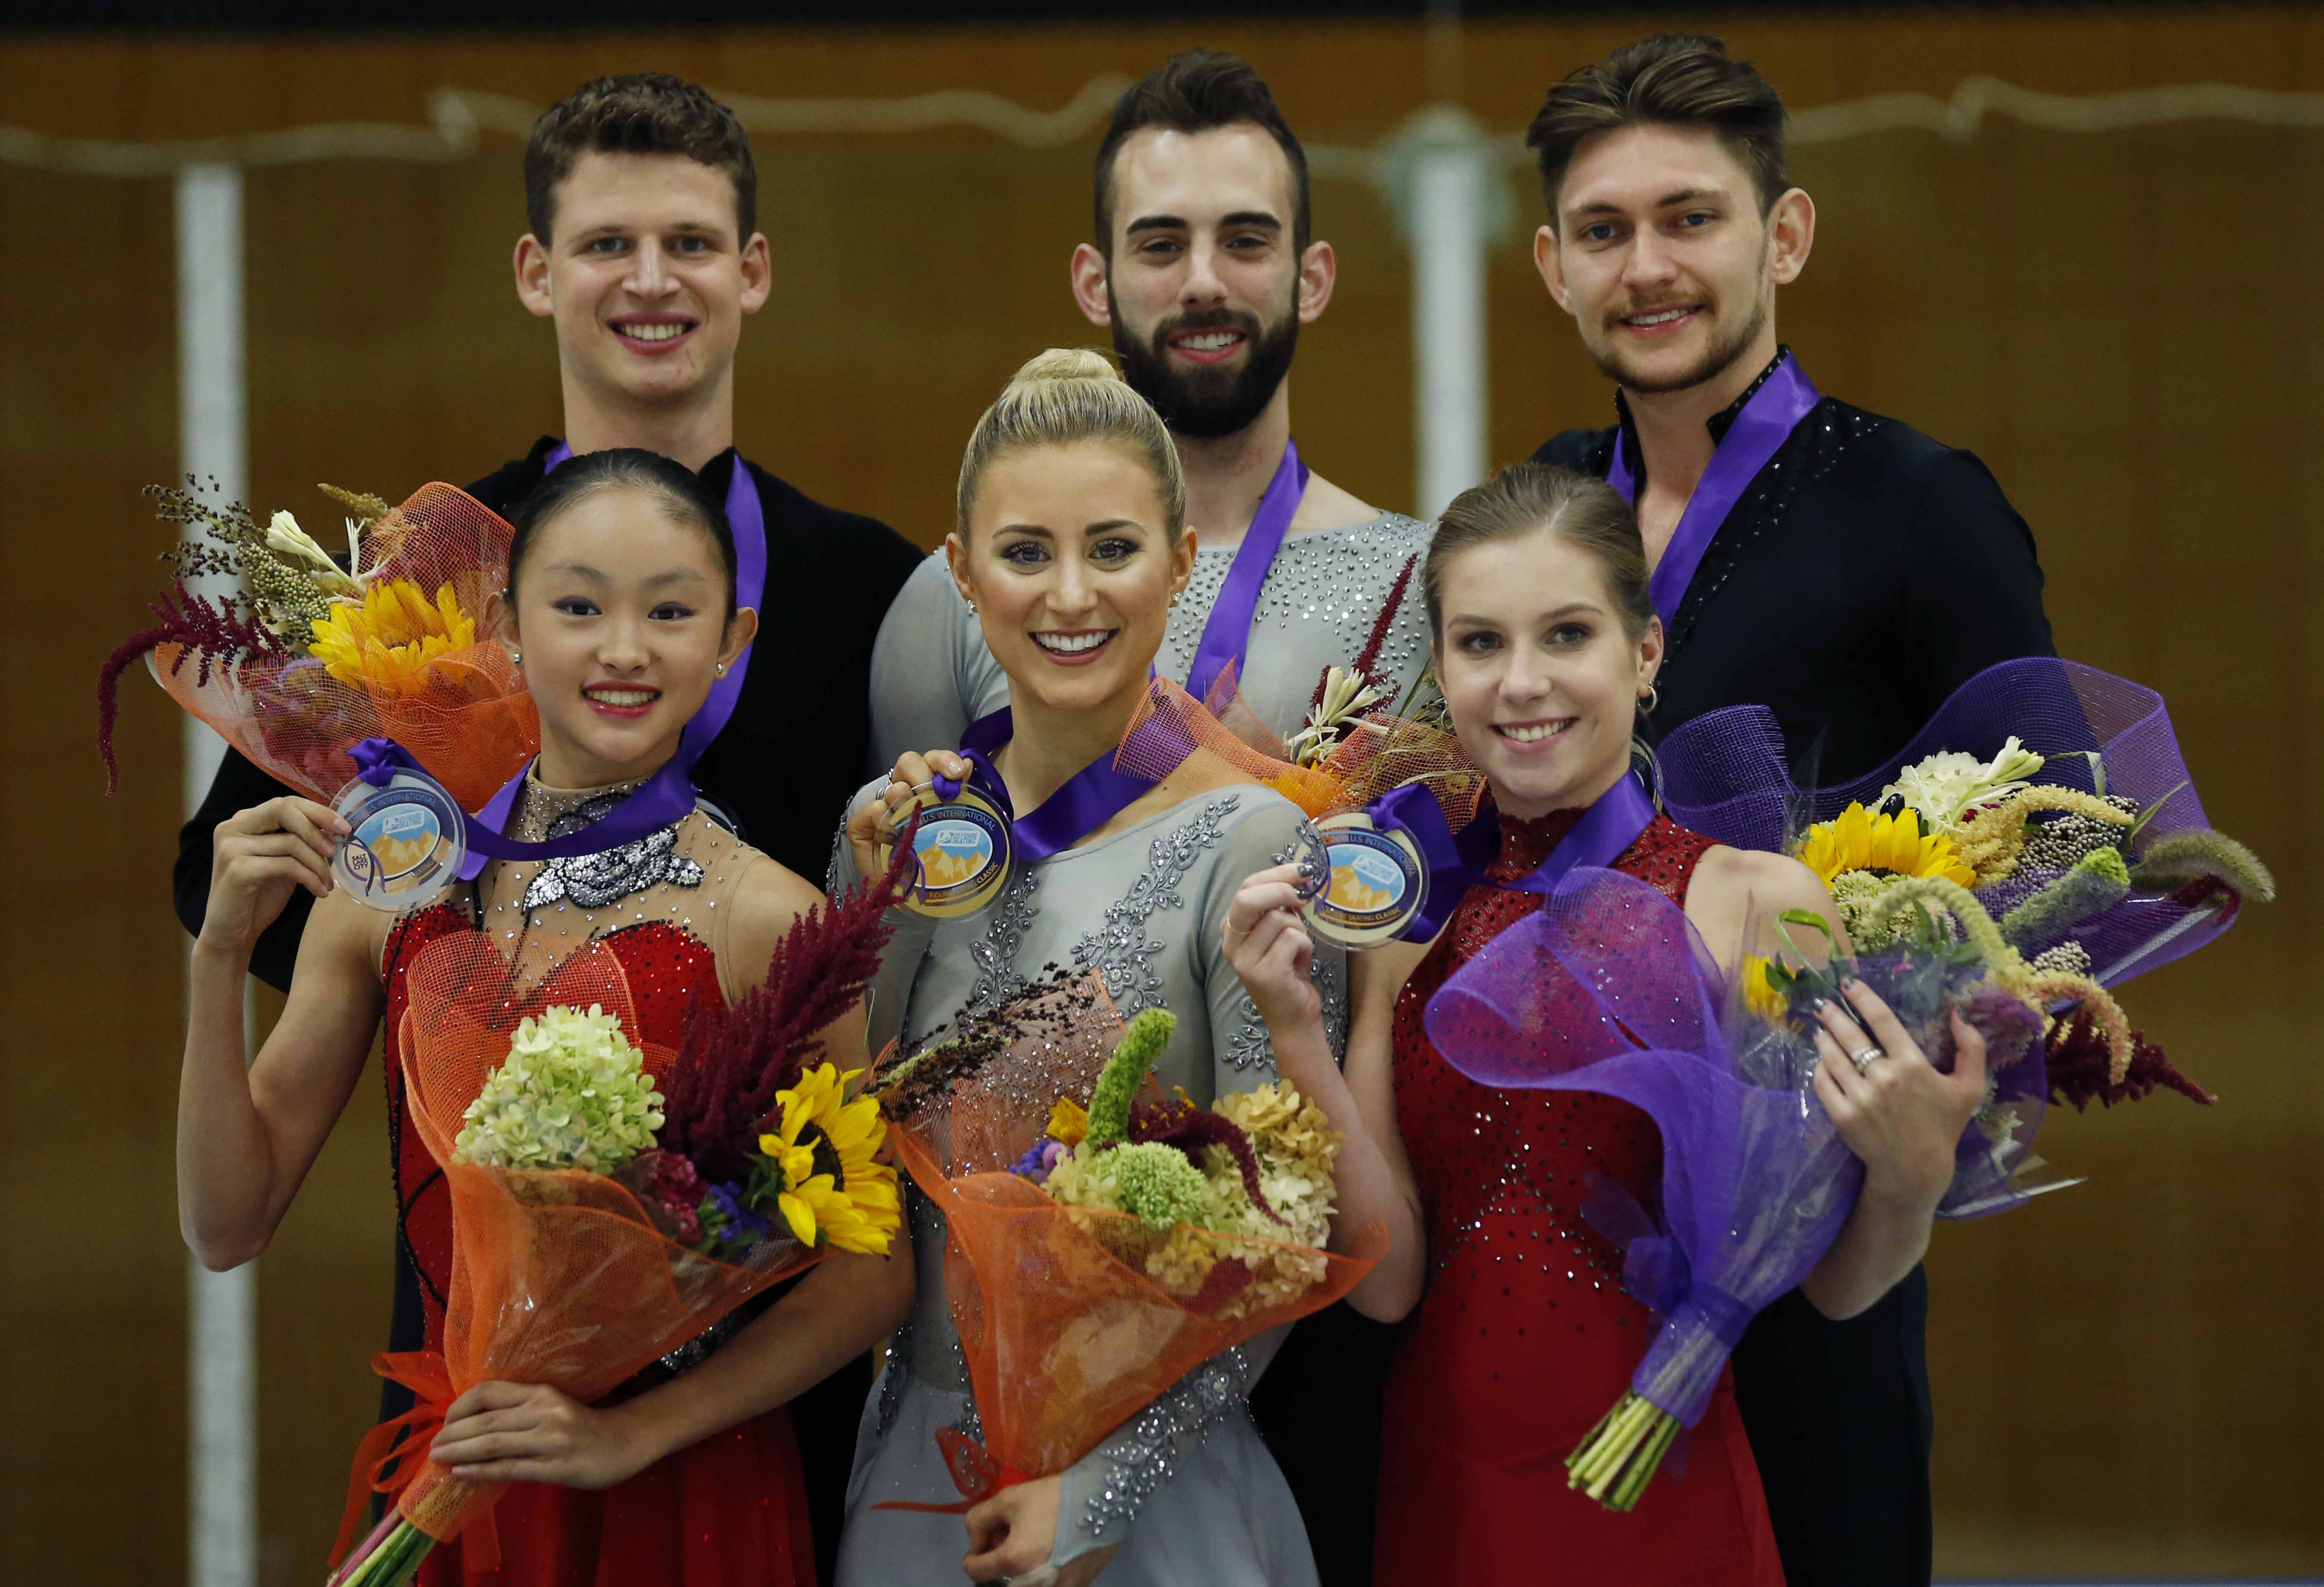 Pair's first place finishers Ashley Cain and Timothy Leduc (center) of the United States, shares the podium with second place finishers Audrey Lu and Misha Mitrofanov (left) of the United States and third place finishers Ekaterina Alexandrovskaya and Harley Windsor of Australia, at the U.S. International Figure Skating Classic on Friday in Salt Lake City.